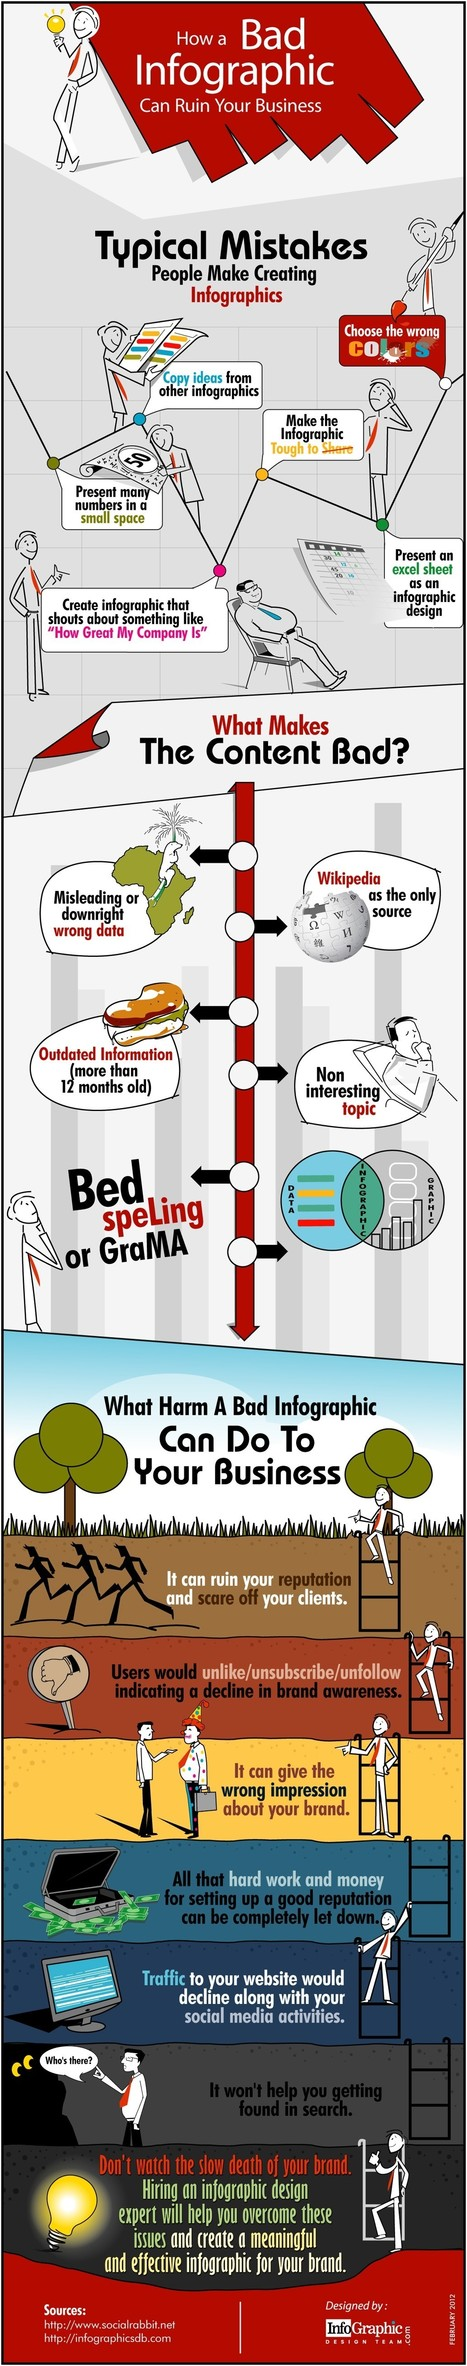 10 Ways A Bad Infographic Can Damage Your Business And How To Avoid It [Infogrpahic] | WEBOLUTION! | Scoop.it